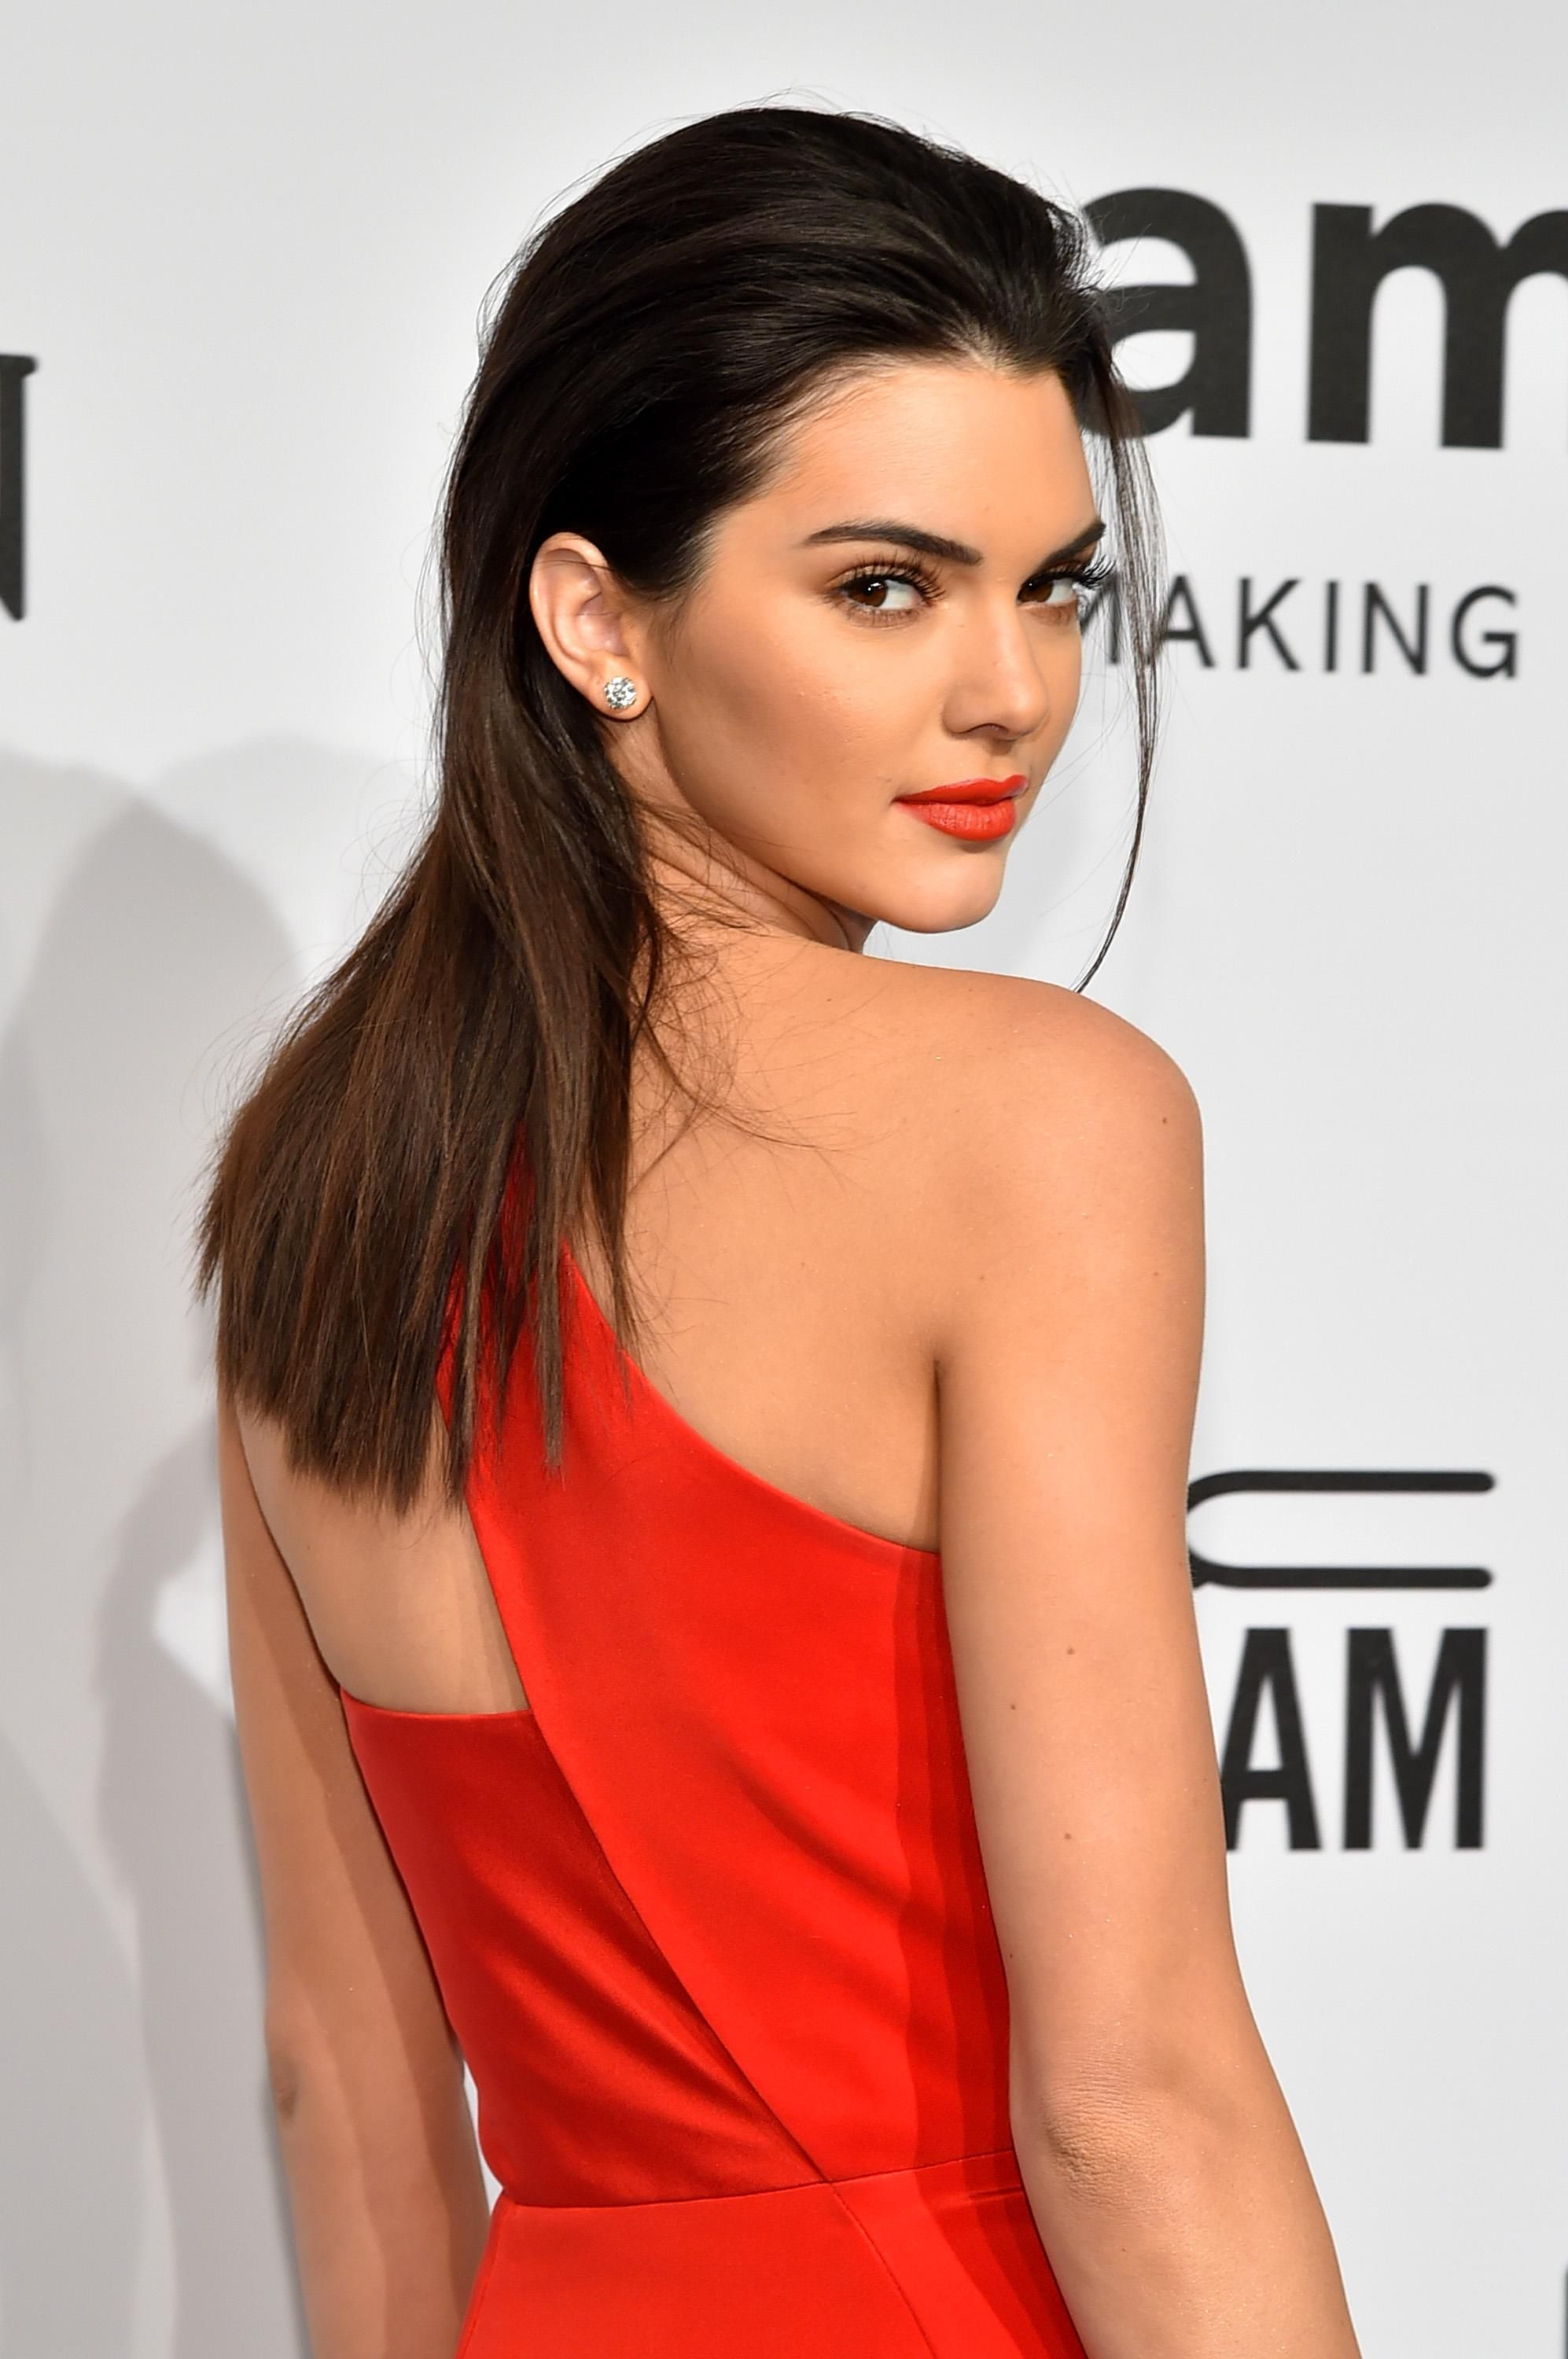 Watch Kendall Jenner Topless Photo. 2018-2019 celebrityes photos leaks! video